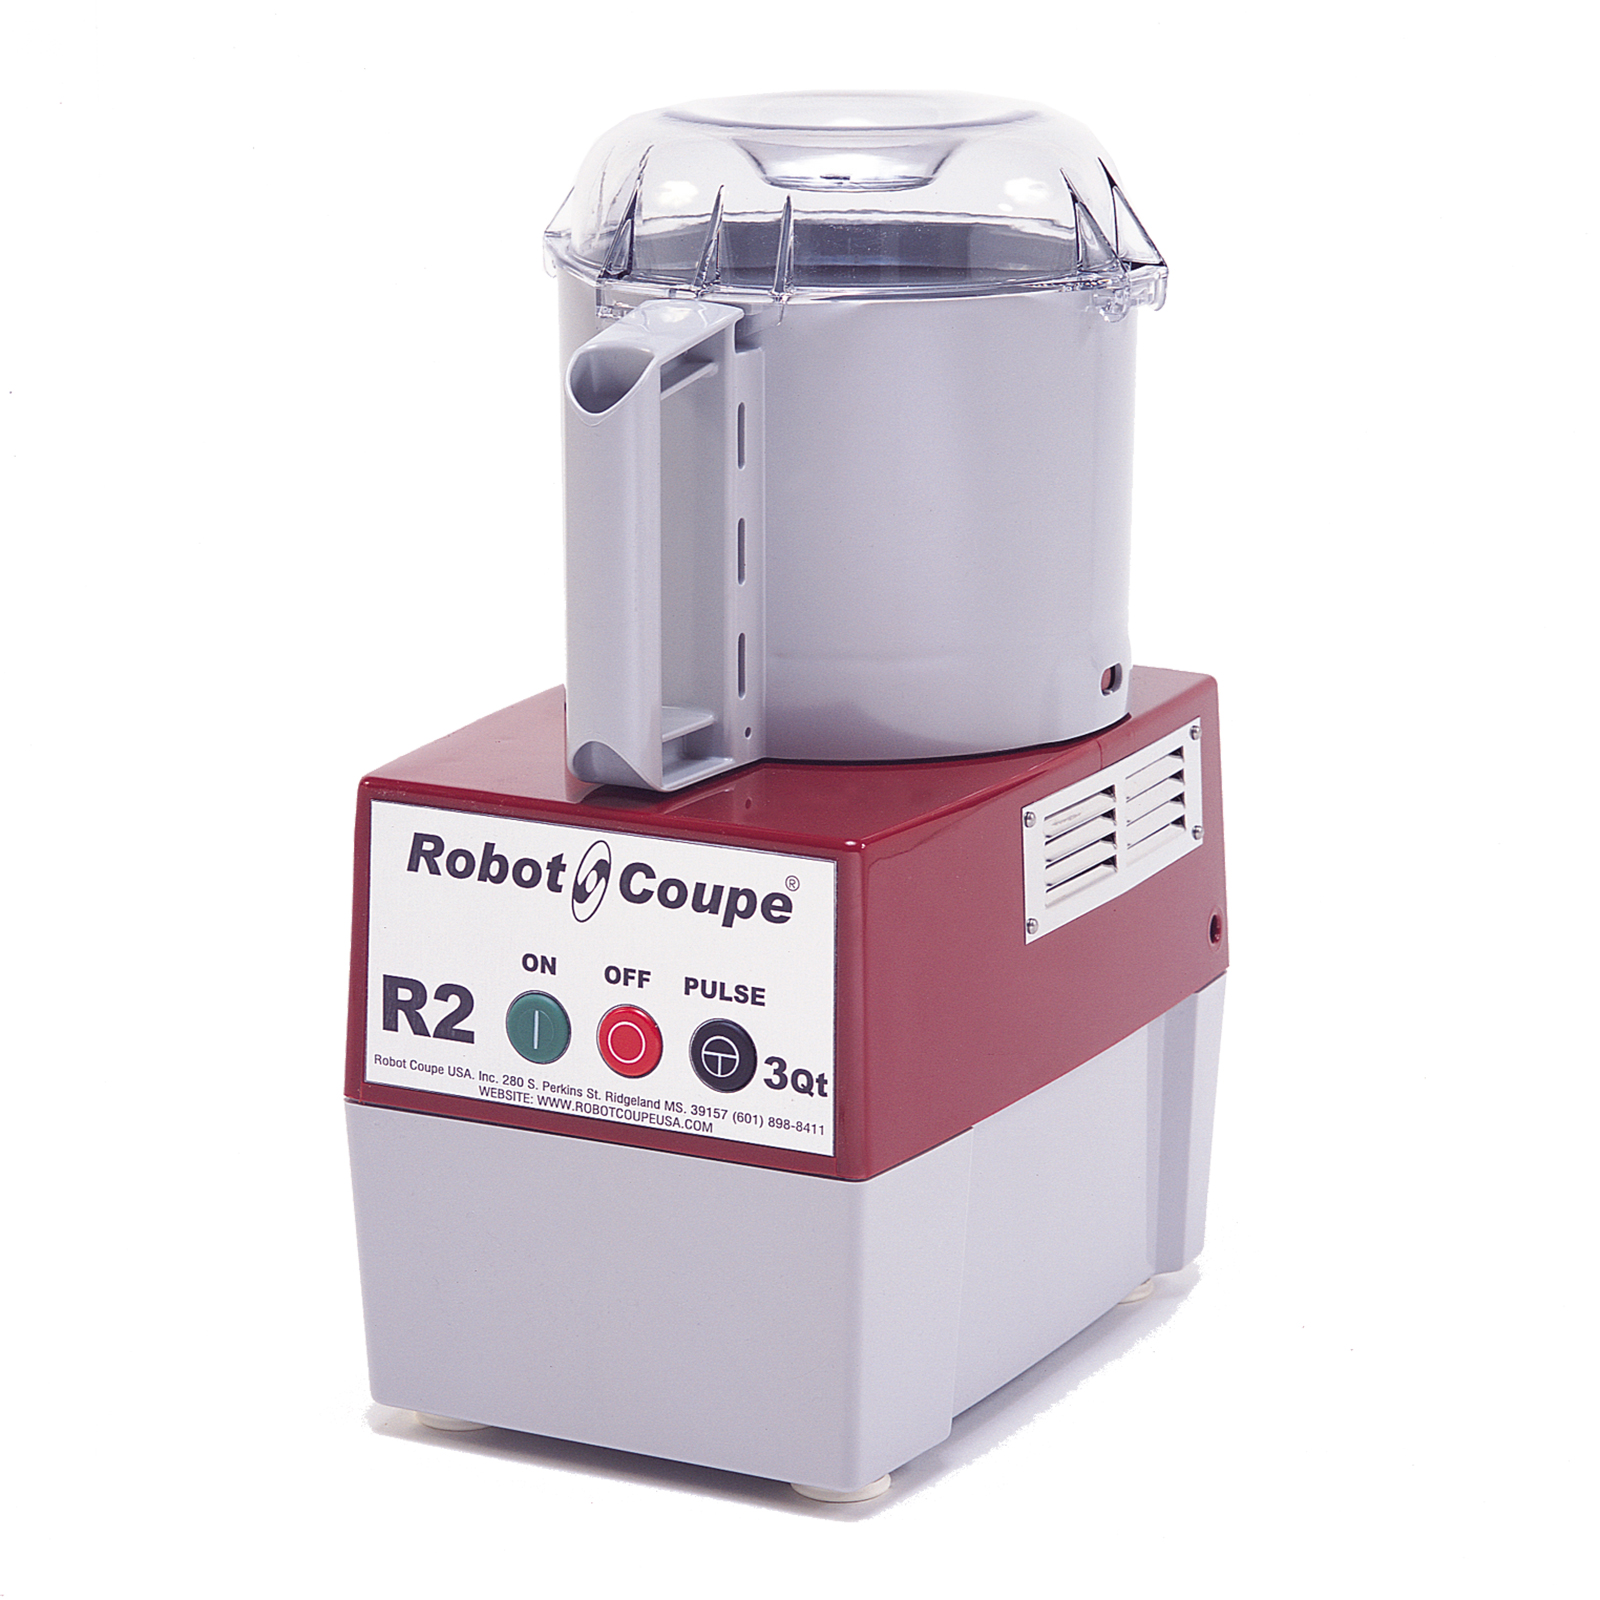 Robot Coupe R2B food processor, benchtop / countertop